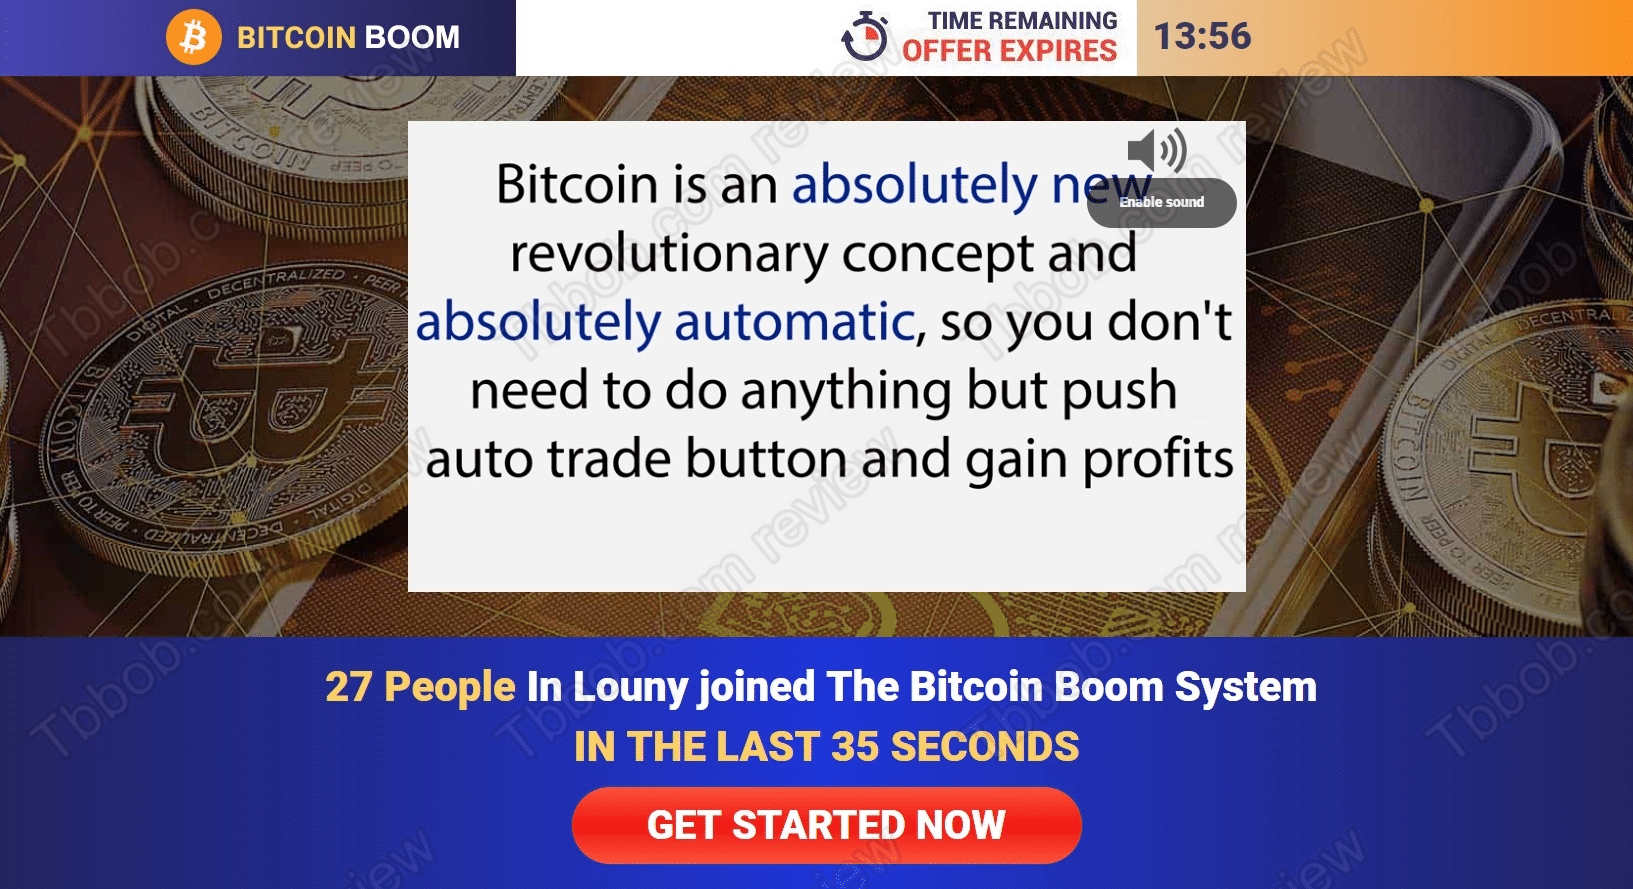 Bitcoin Boom How to sign up with Bitcoin Boom?